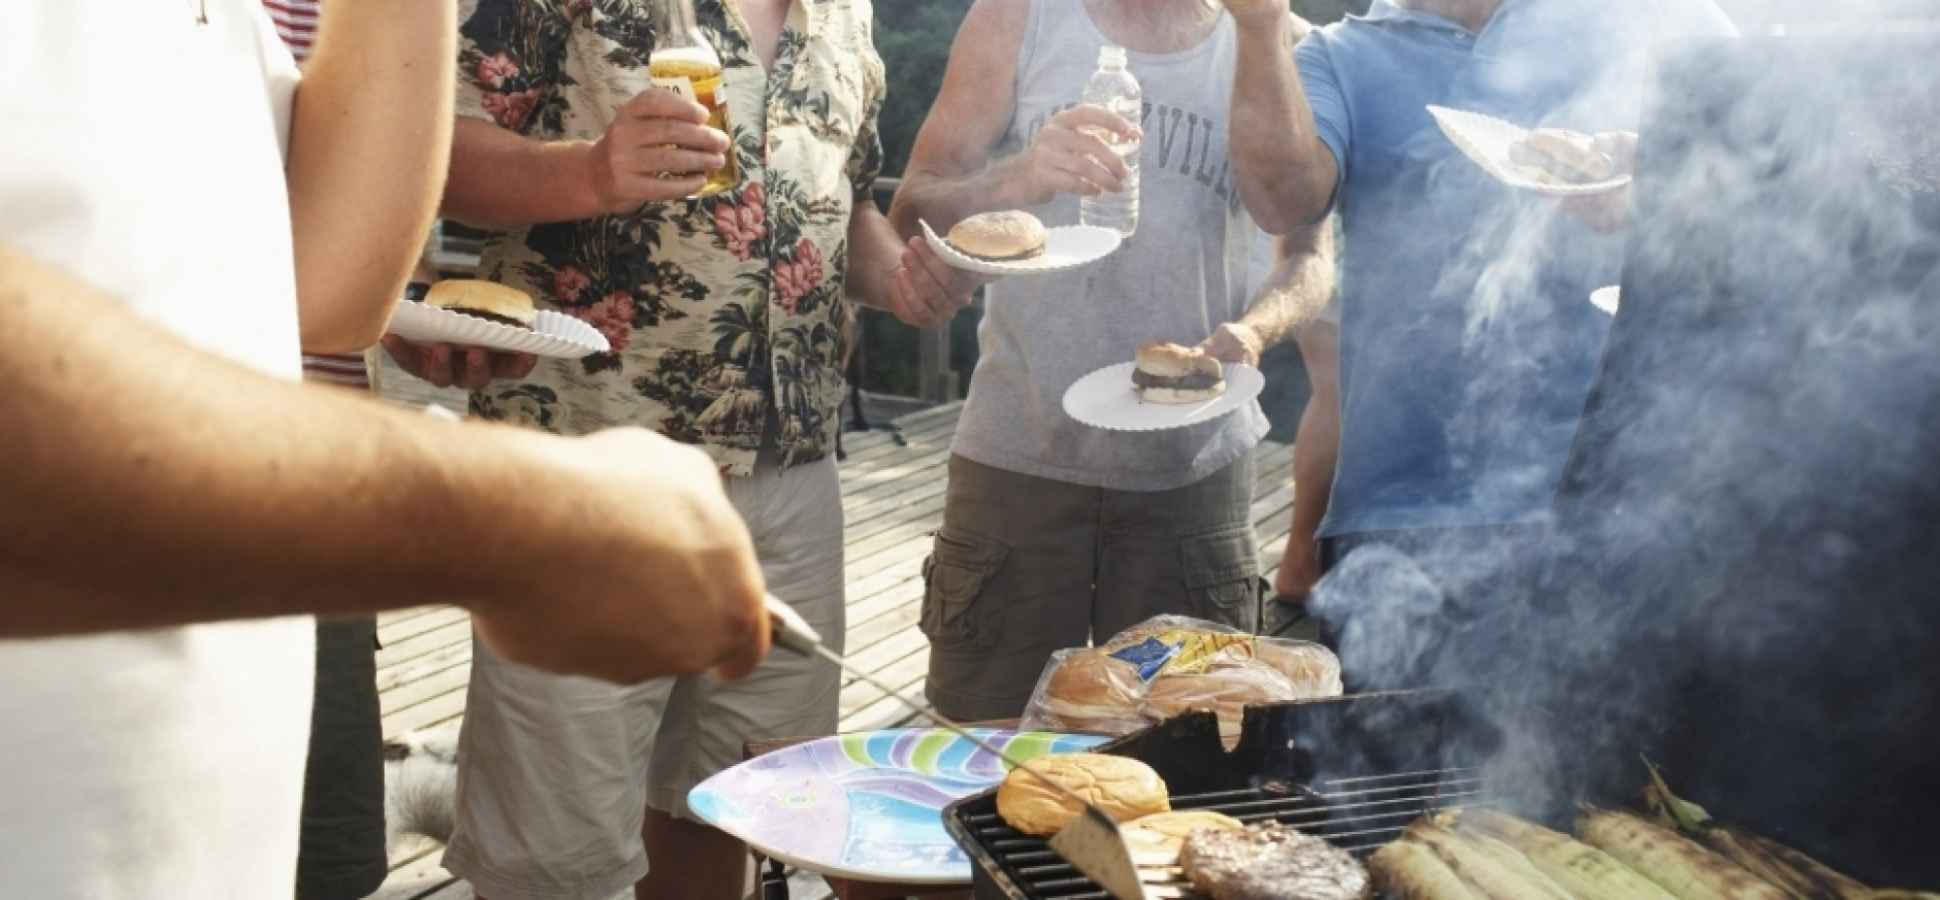 5 Incredible Gadgets That'll Take Your Barbecue to the Next Level